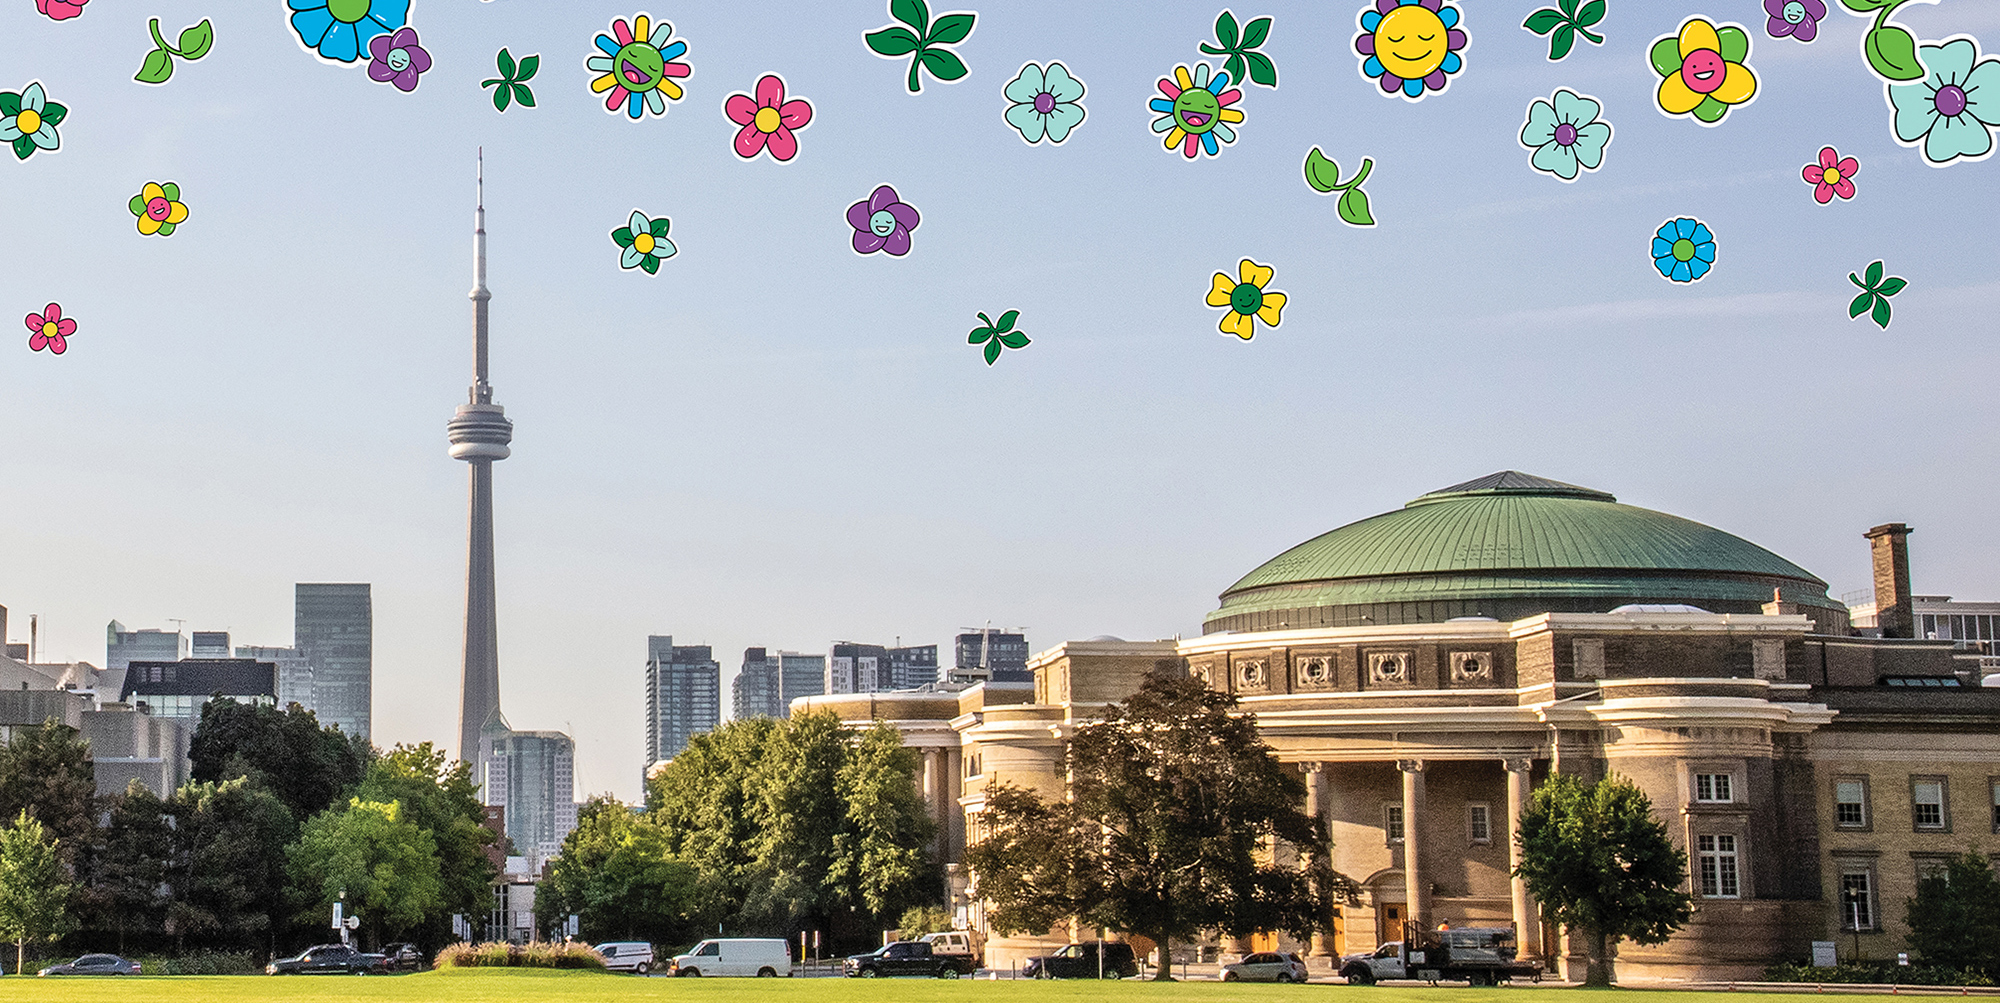 Photo of front campus field and Convocation Hall with flower emoji illustrations floating above